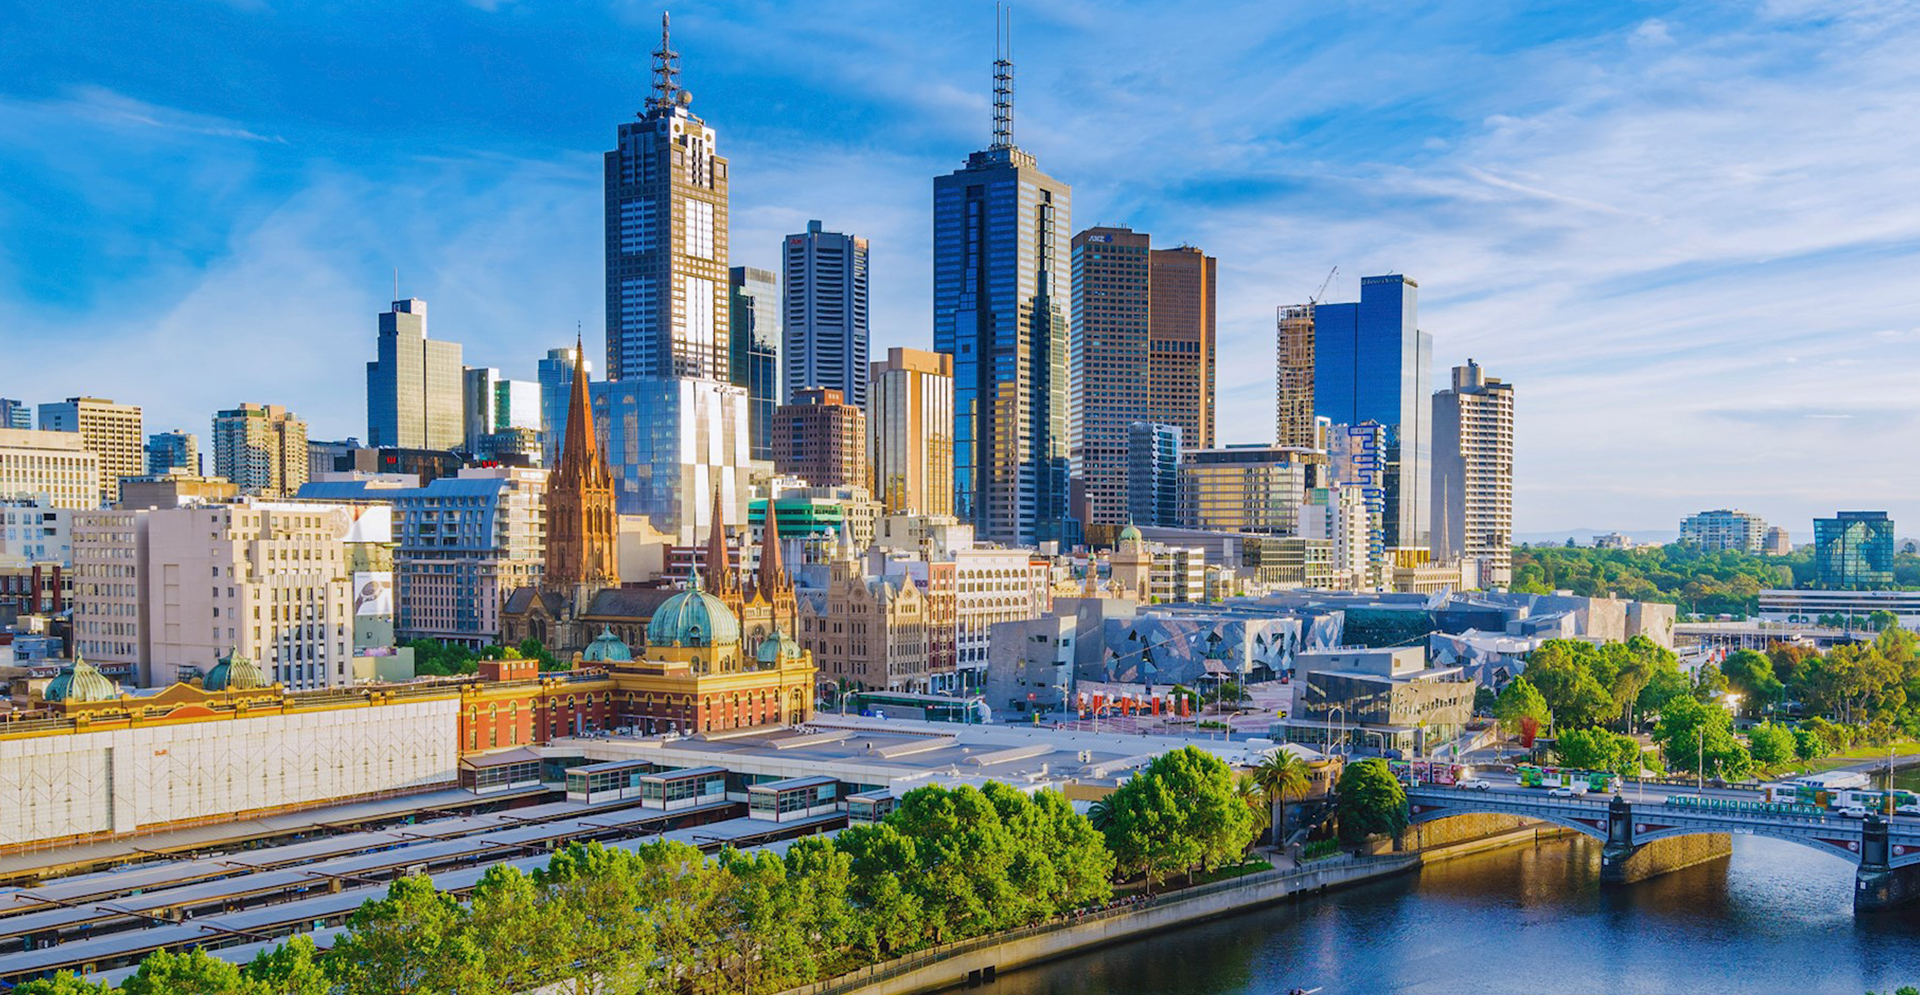 Aerial view of Melbourne skyline overlooking Federation Square